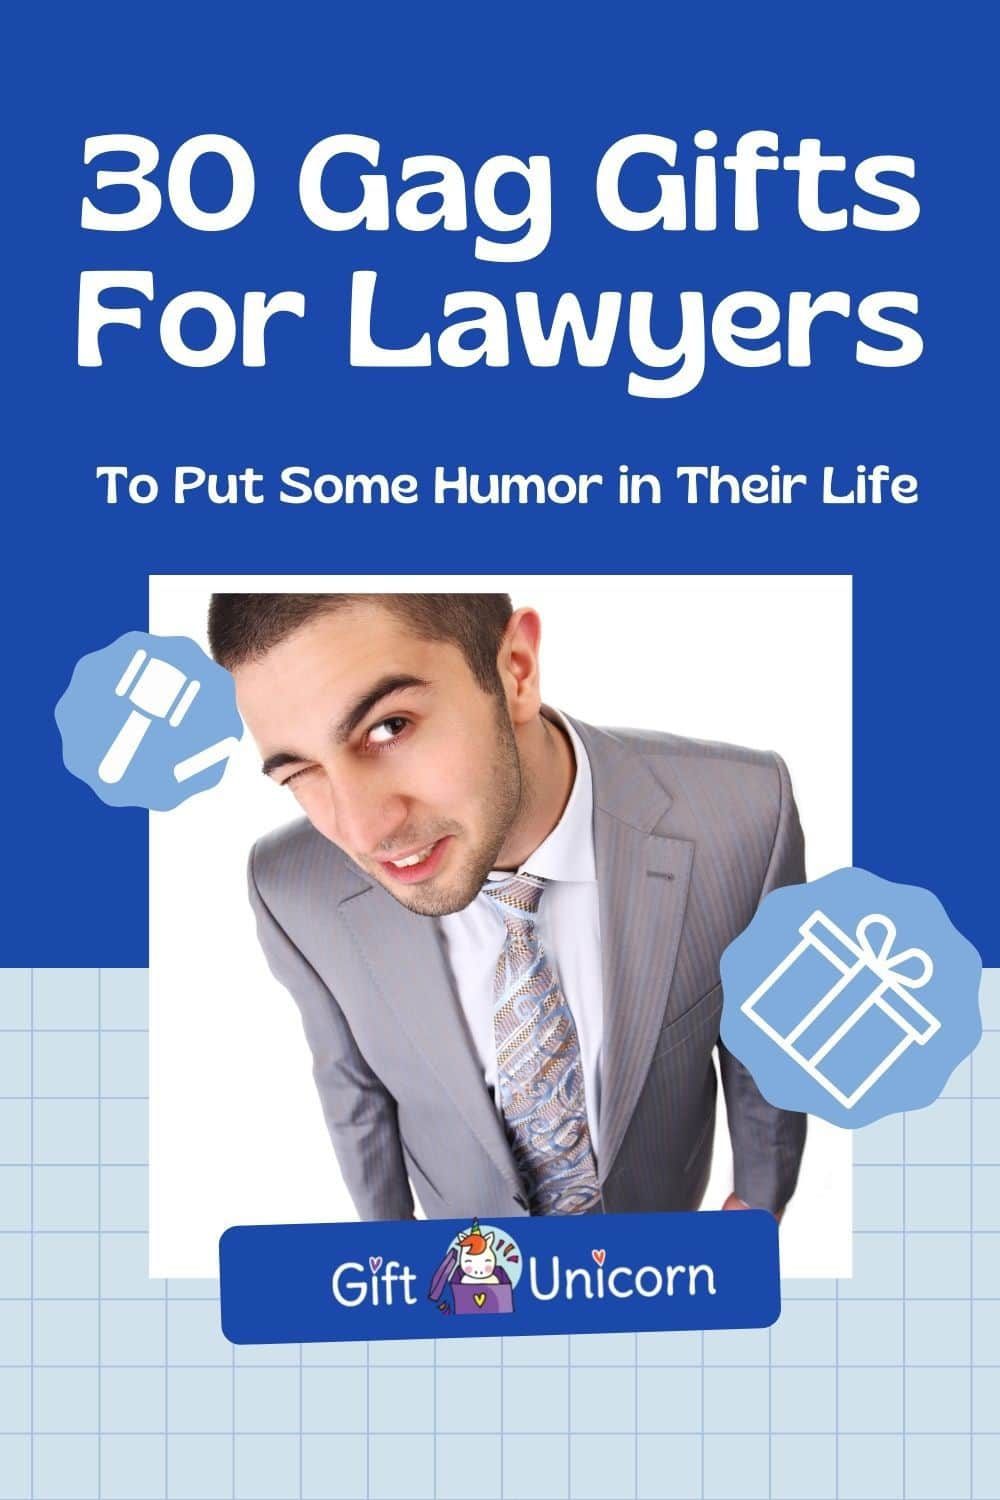 gag gifts for lawyers